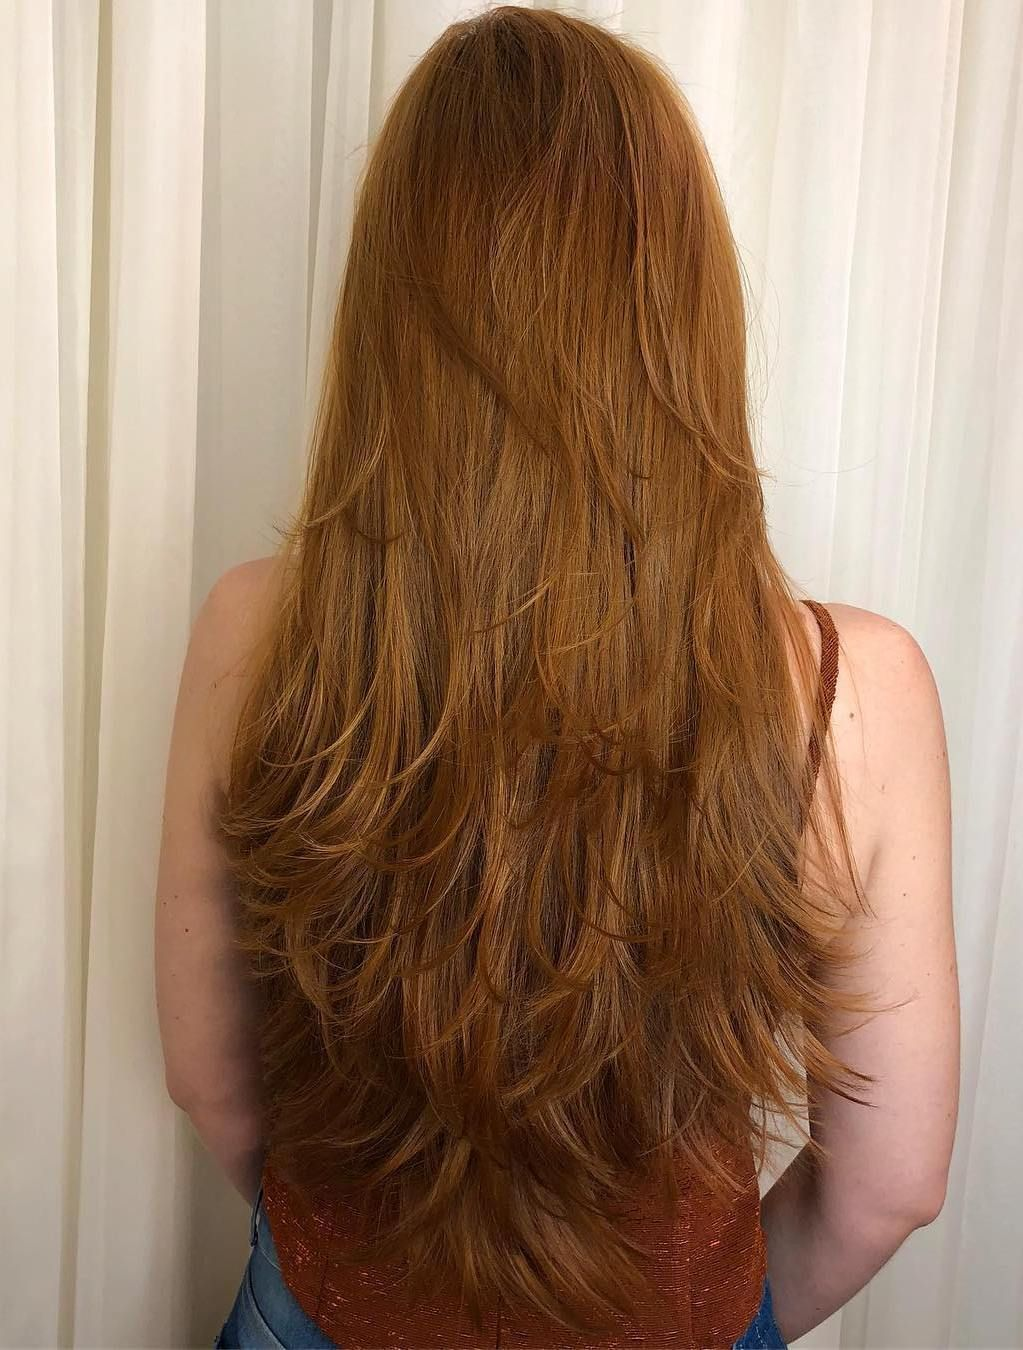 Extra Long Ginger Hair With Feathers Long Layered Hair Haircuts For Long Hair Straight Hairstyles